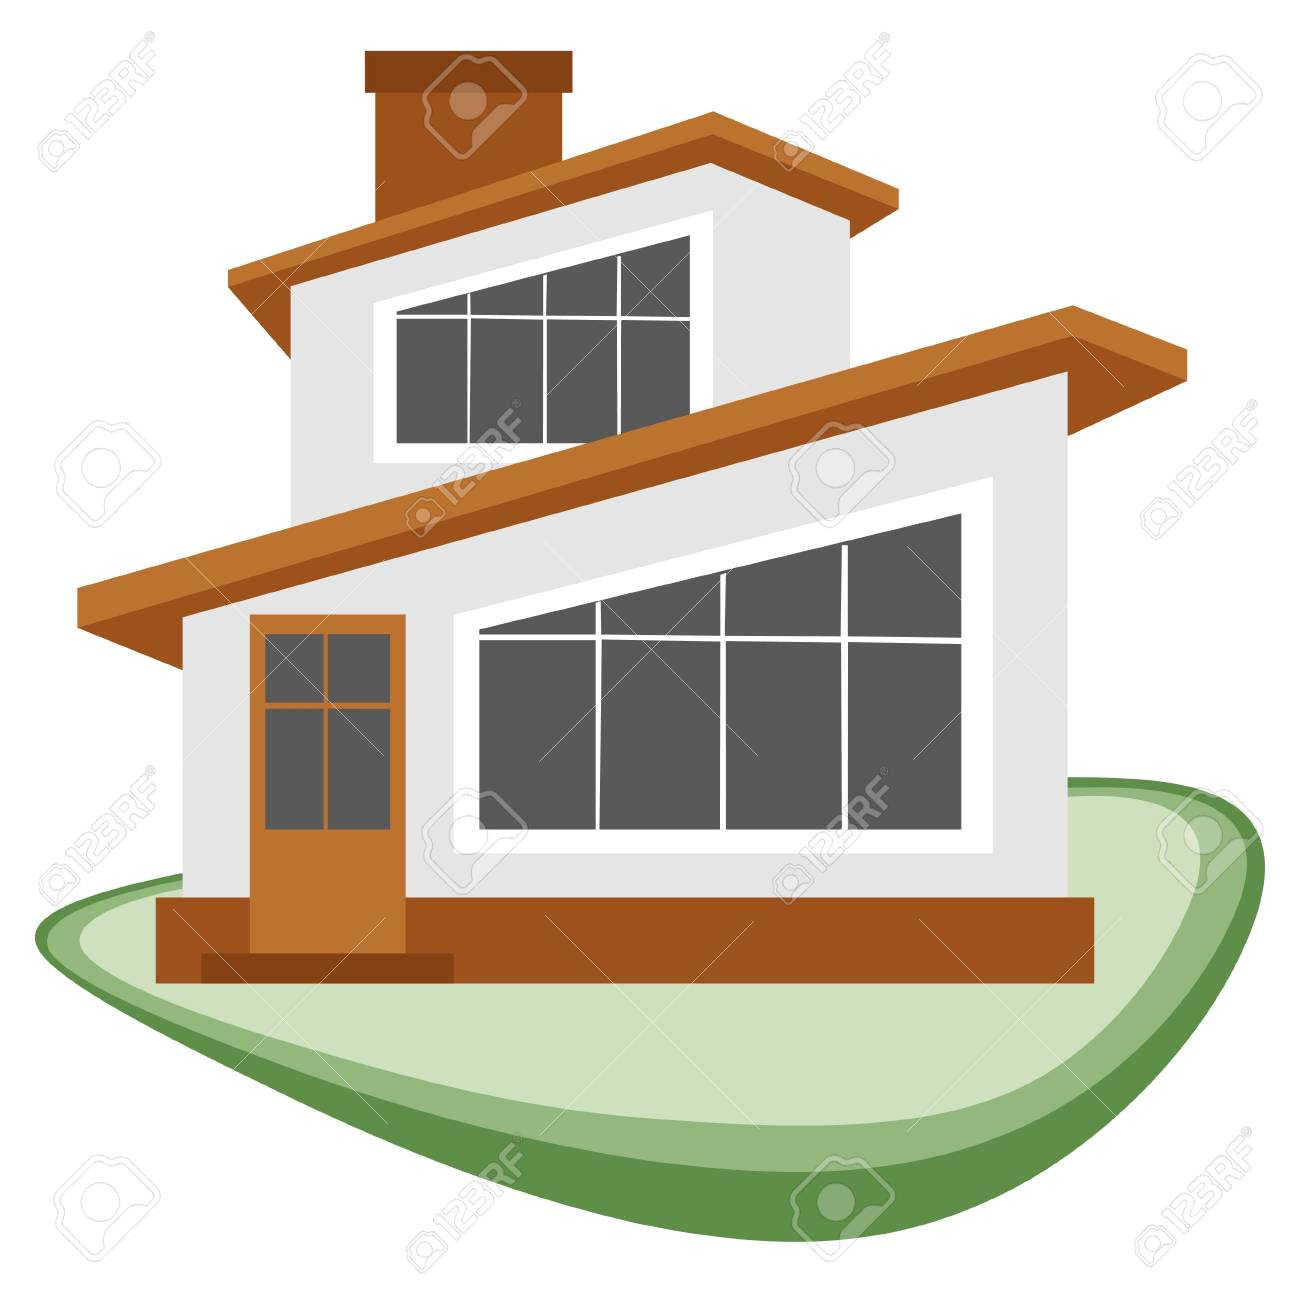 An illustration of a house to be used as a symbol or icon Stock Vector - 18307113